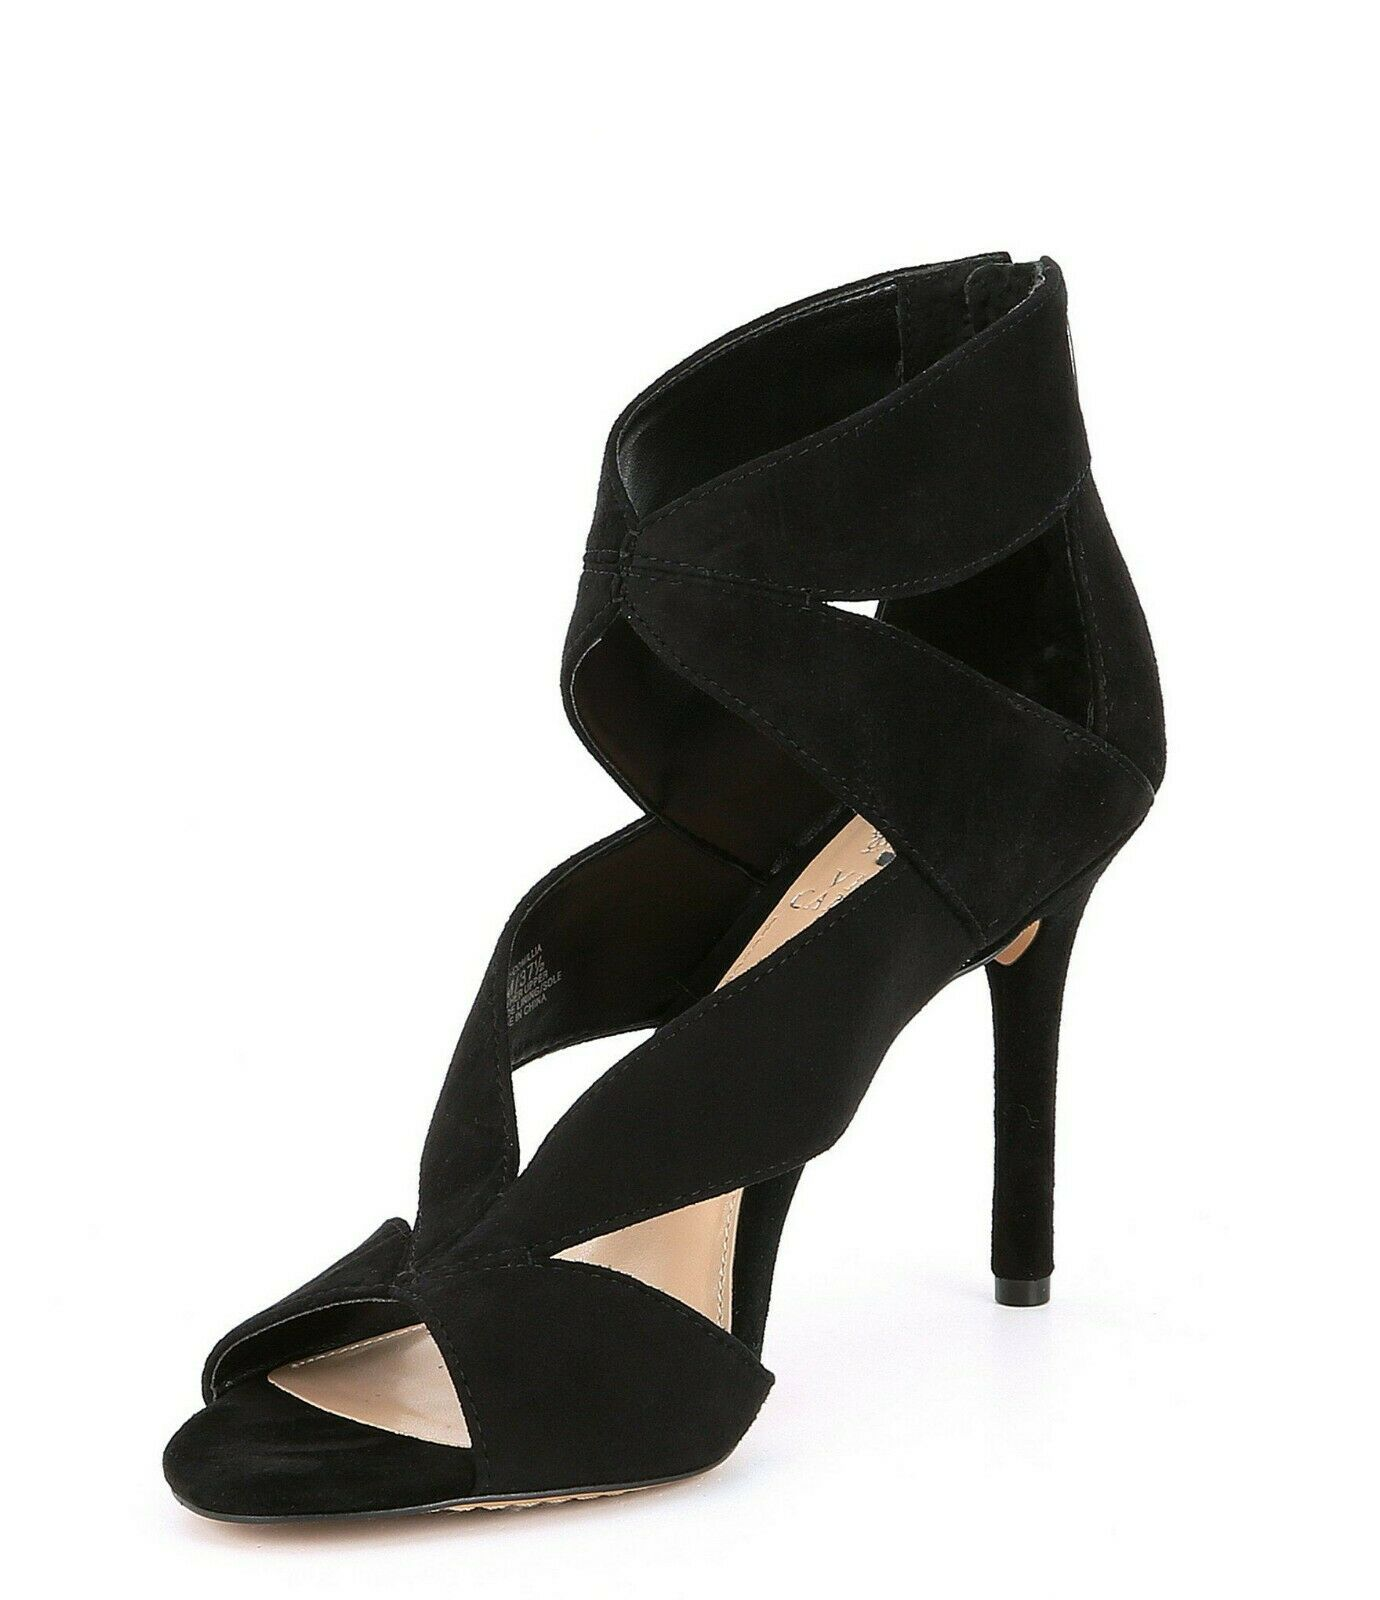 6.5 7.5 8 VINCE CAMUTO CAMUTO CAMUTO COMILLIA BLACK SUEDE LEATHER WOMEN'S SANDAL SHOES ebf80c